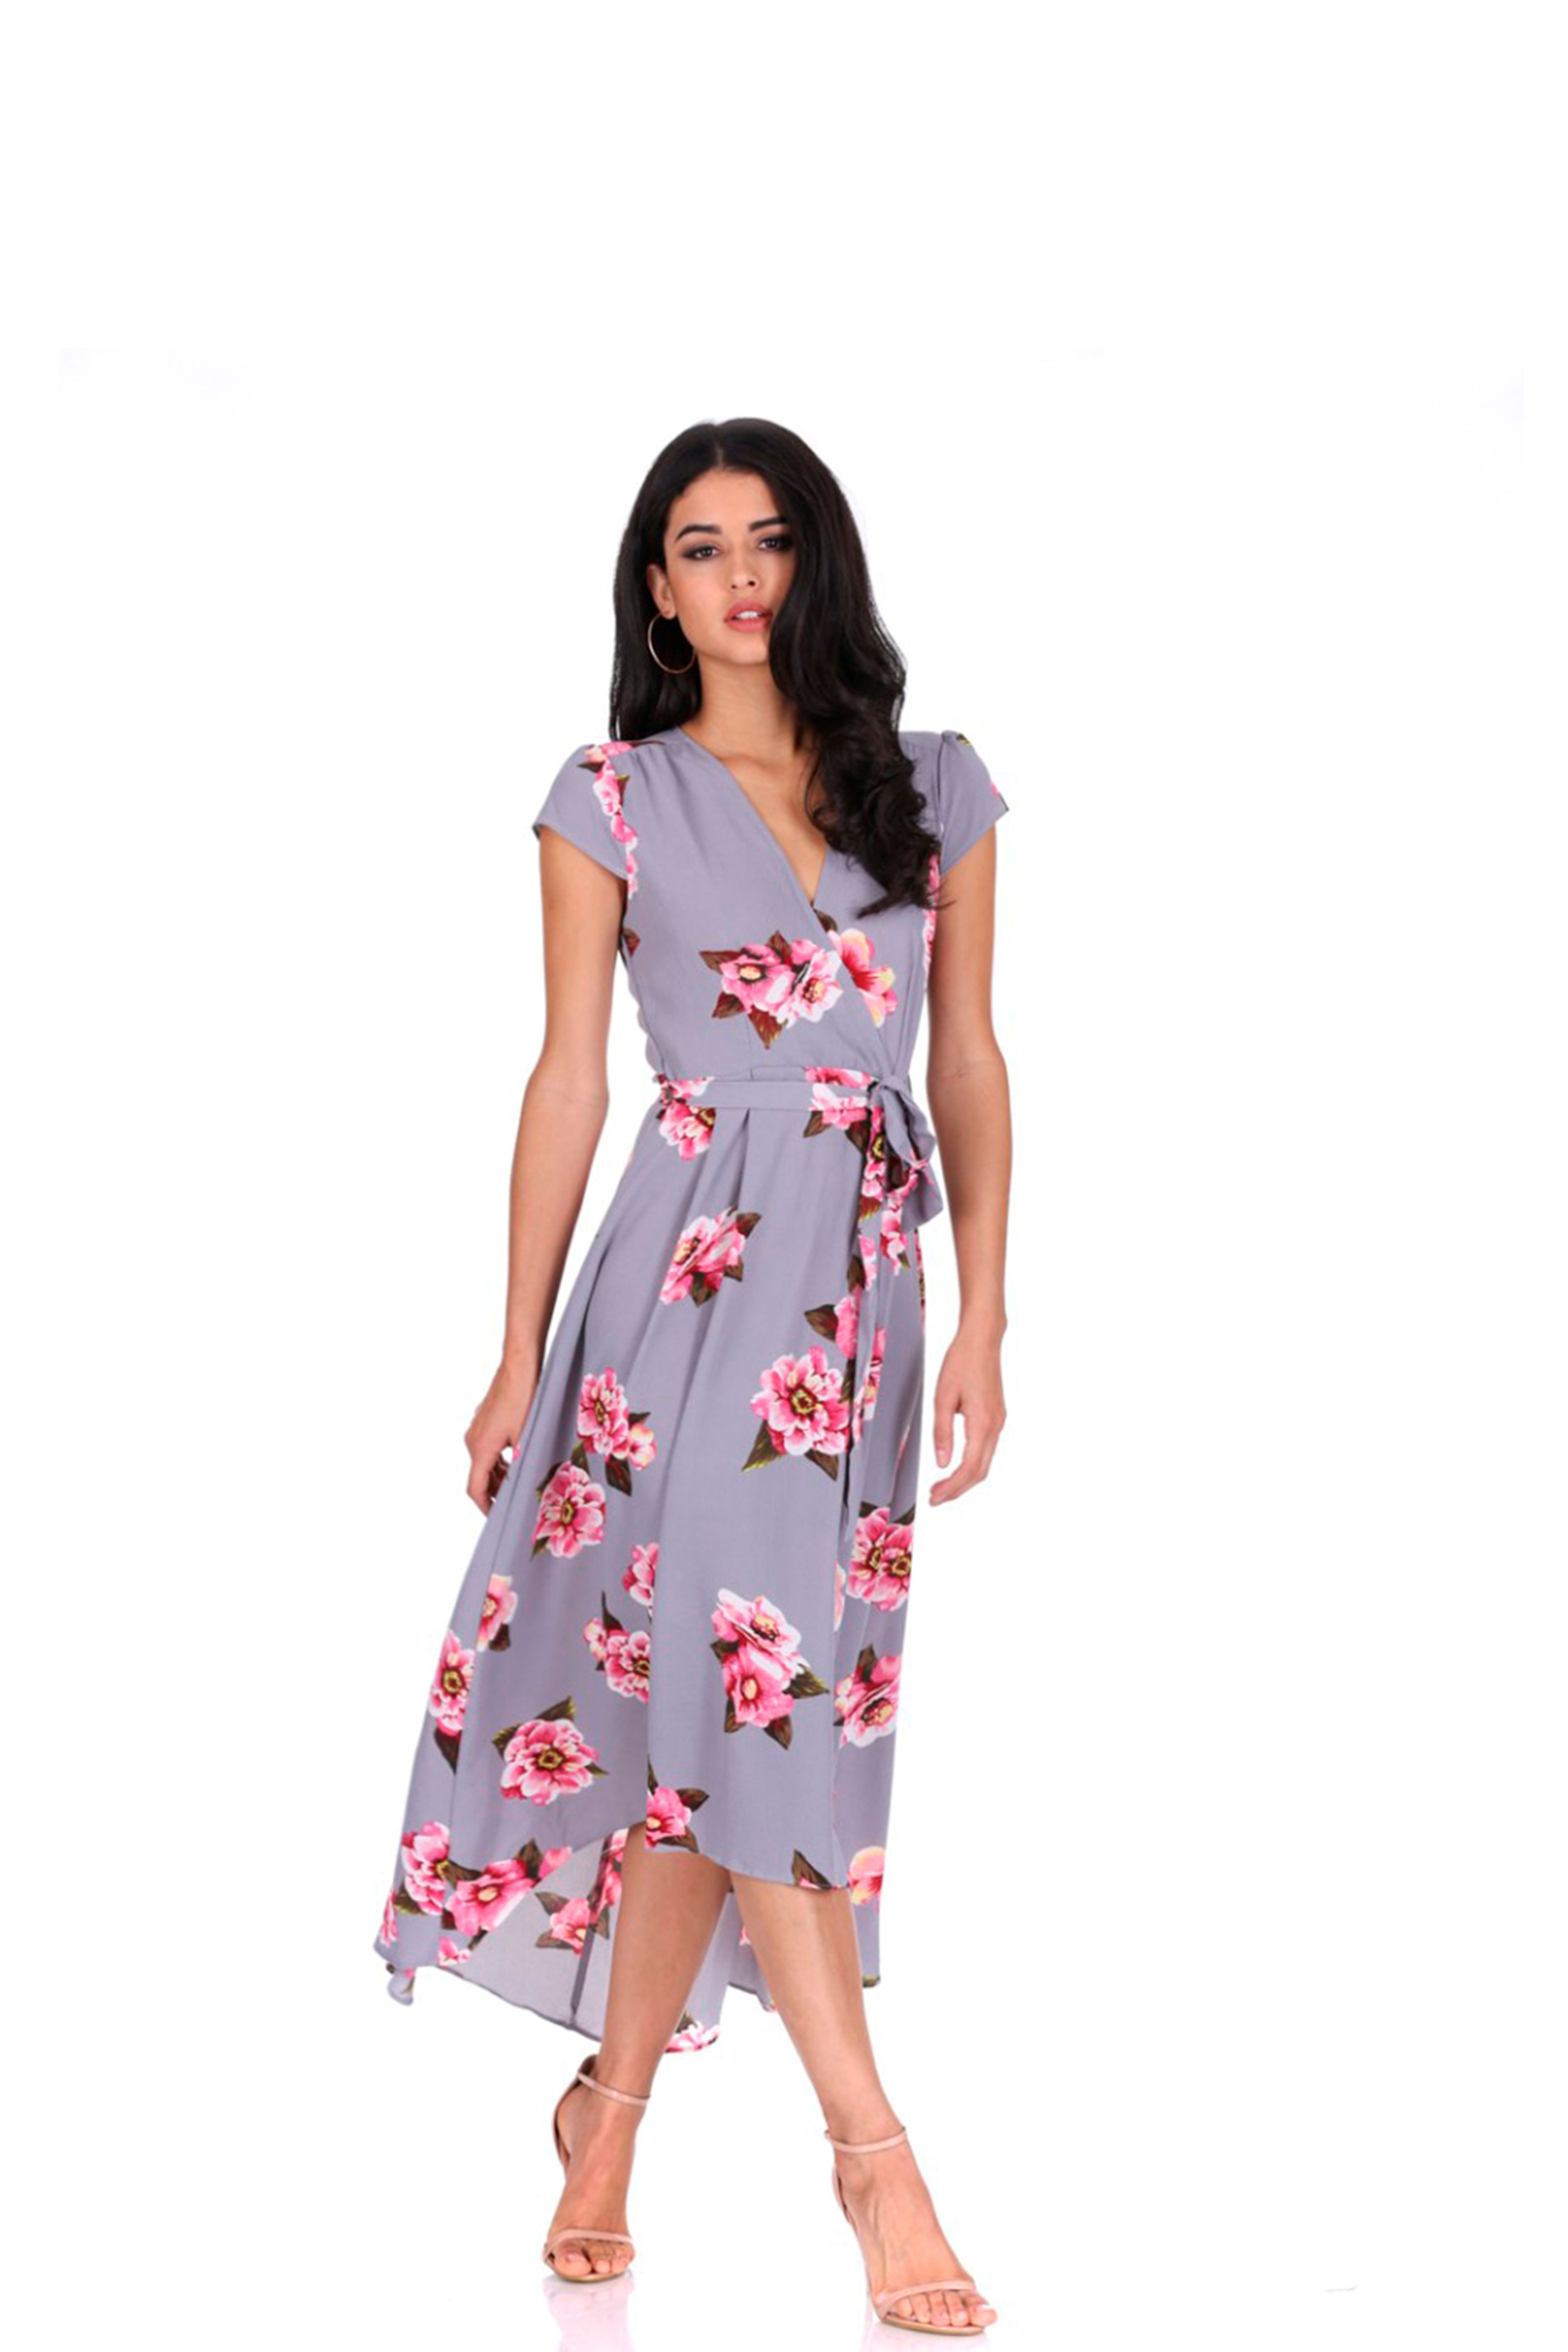 a97012c481e Ax Paris Navy Floral Print Midi Dress - Gomes Weine AG